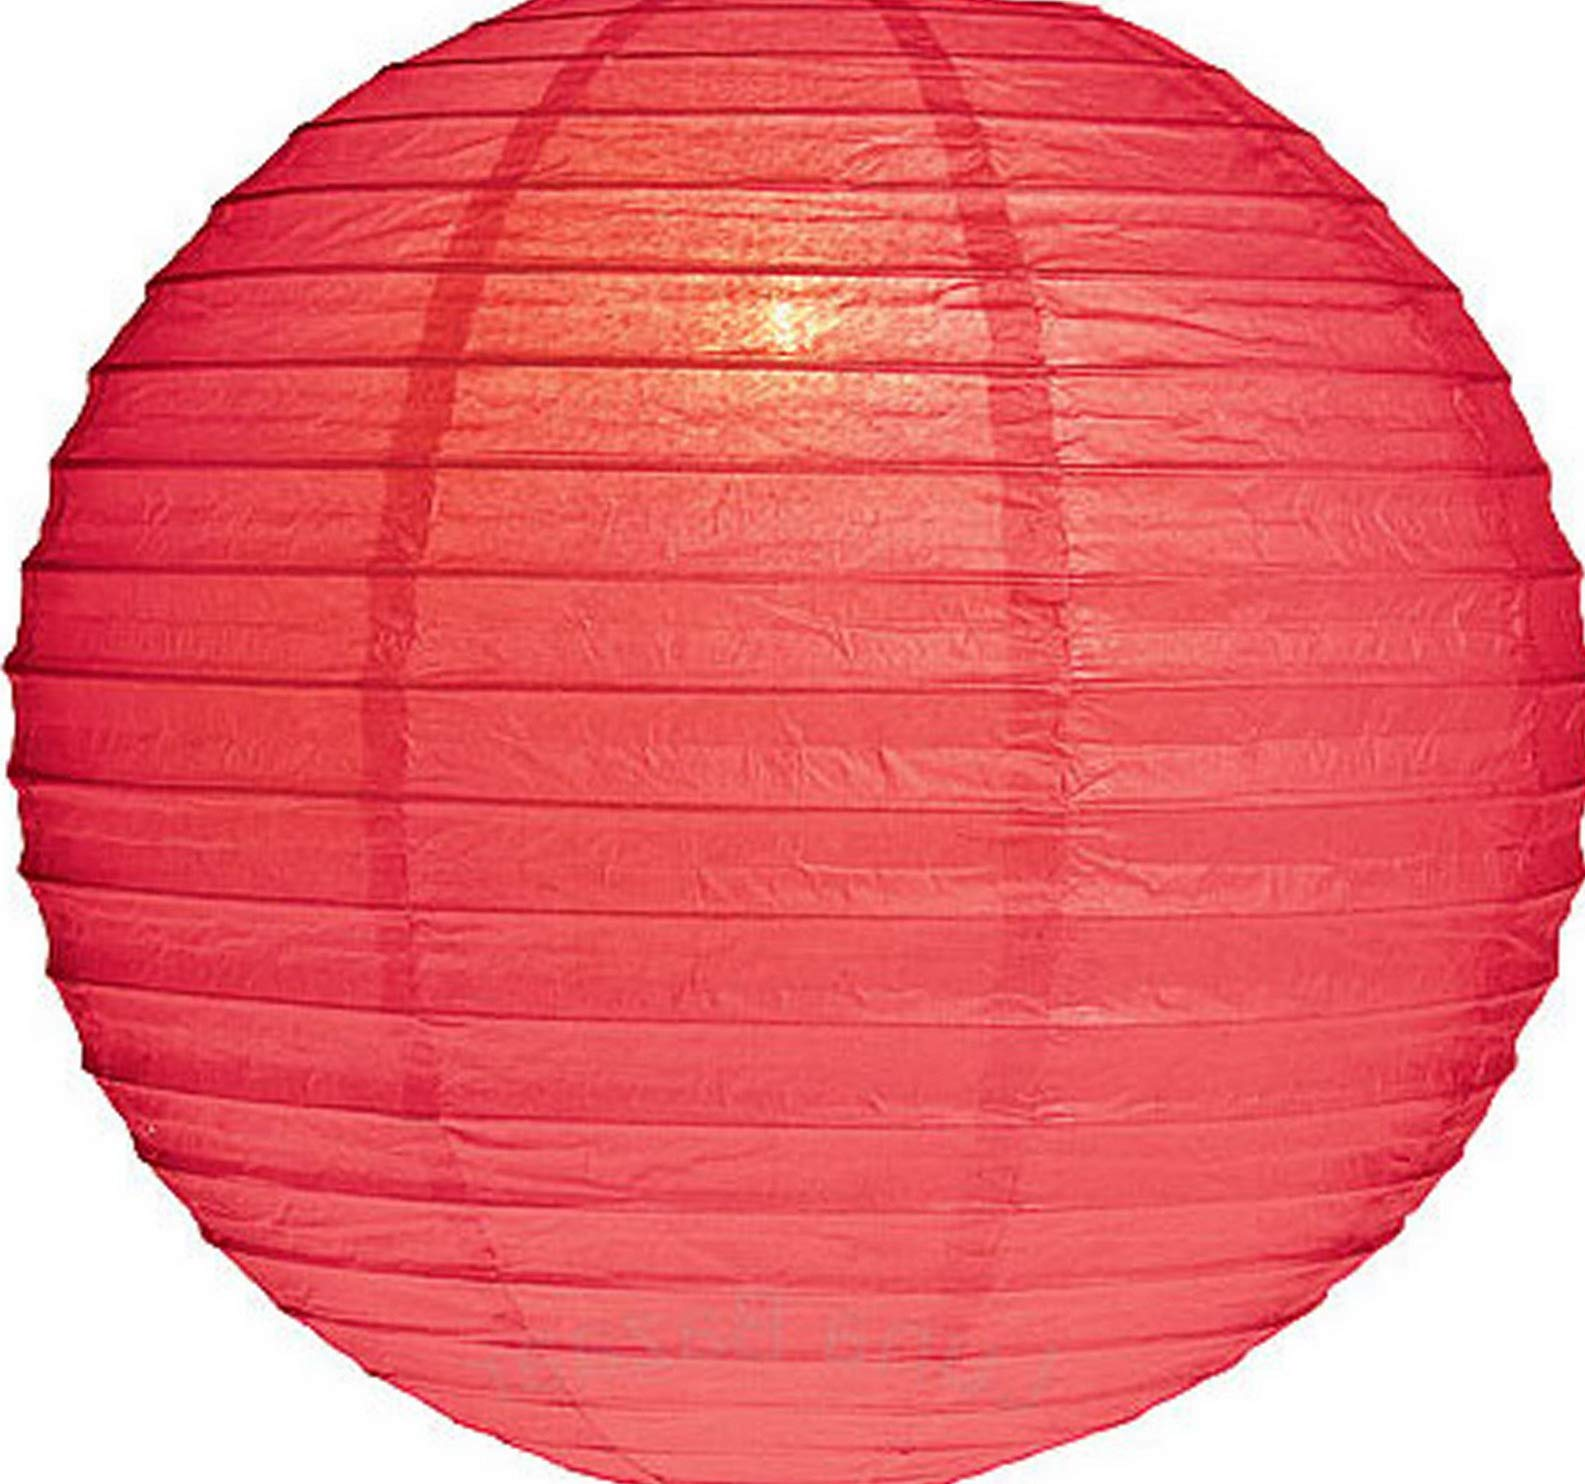 Mikash 12X Round Chinese Paper Lanterns lamp 12 Wedding Party Floral Event Decoration | Model WDDNGDCRTN - 25494 | with Light